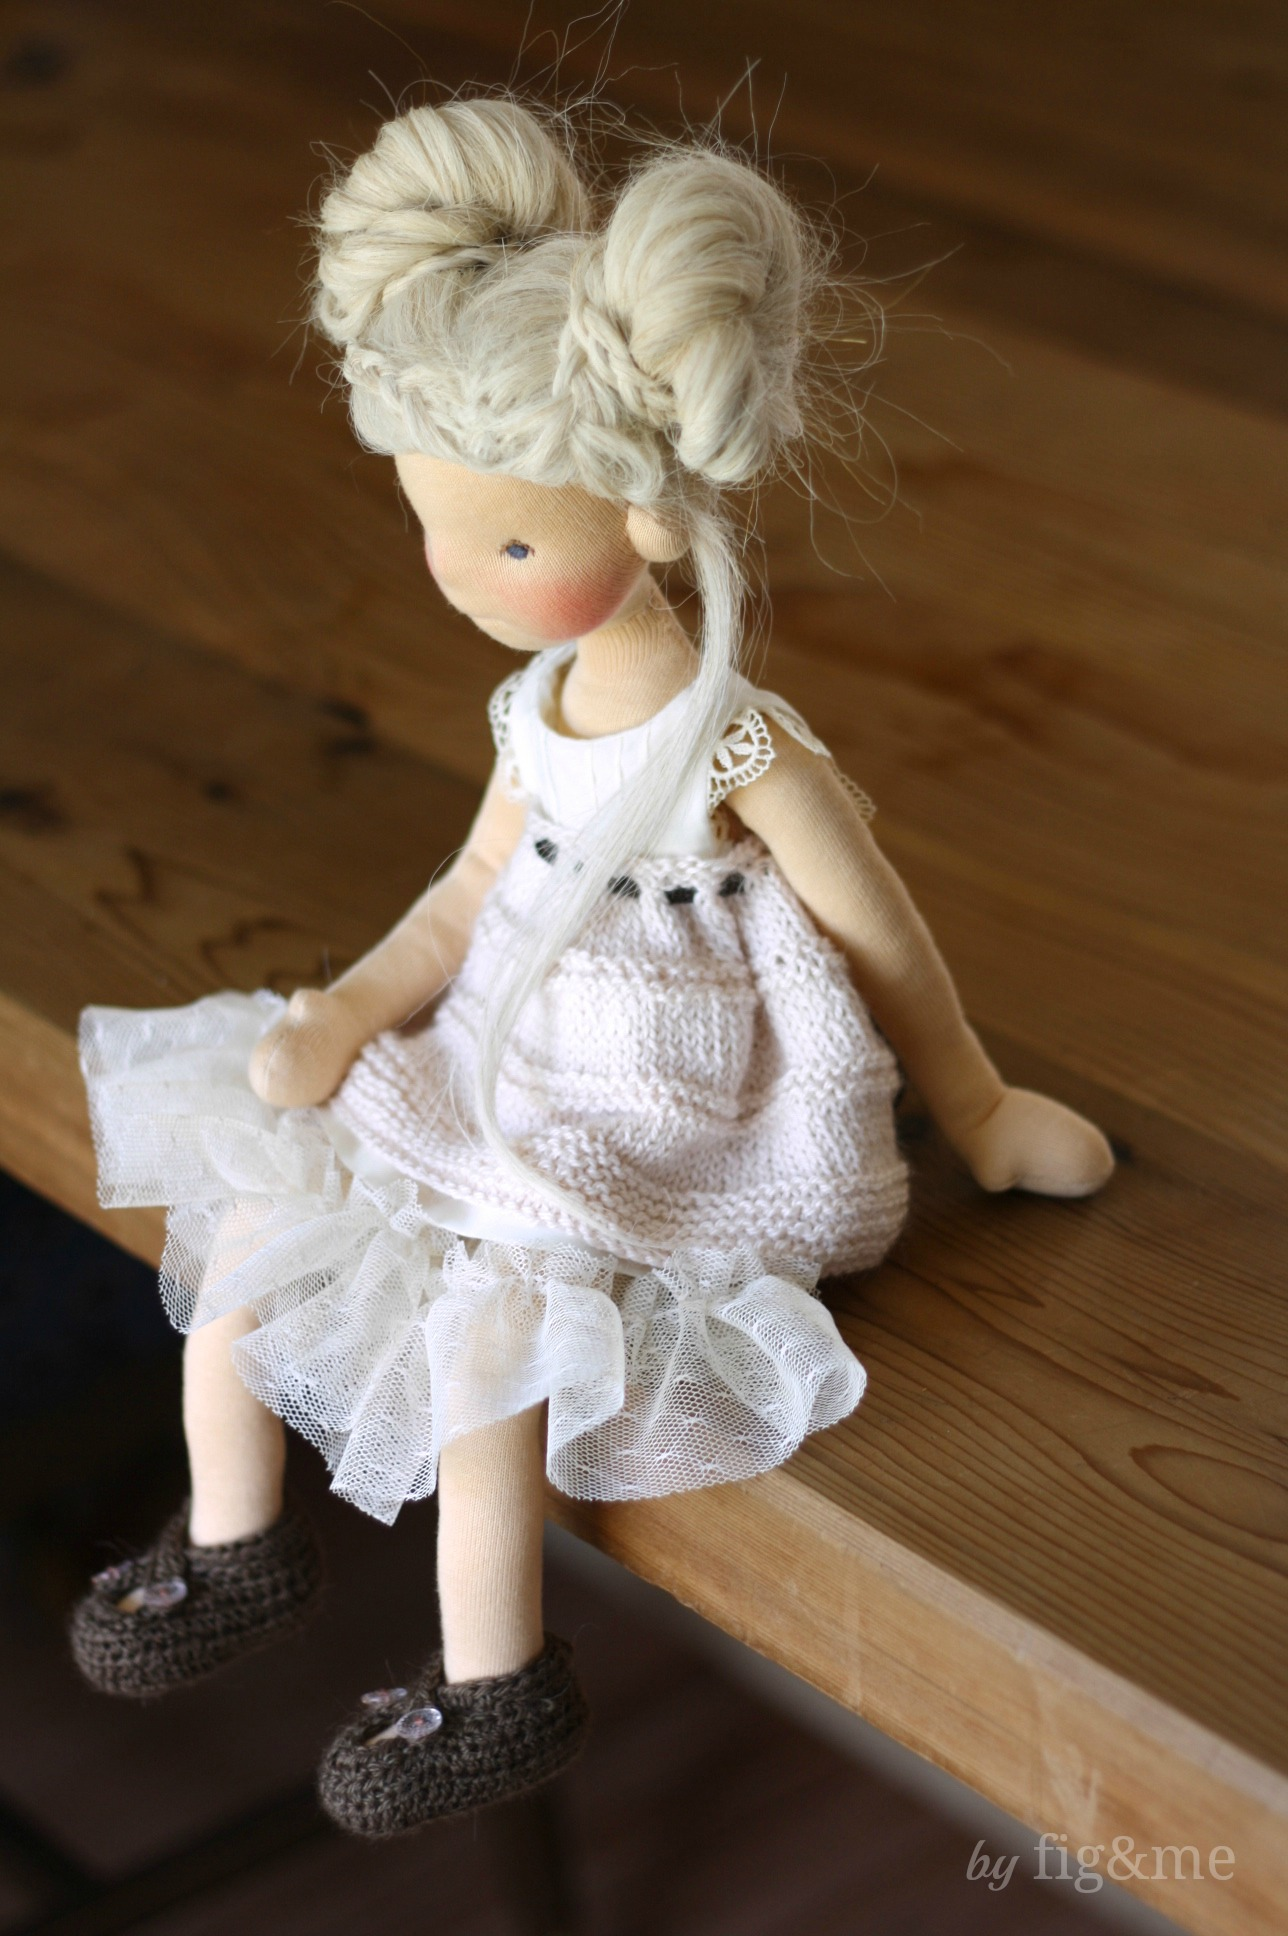 Cygnet, a Mannikin (wool sculpture)doll by Fig and me,in her dainty new clothes.